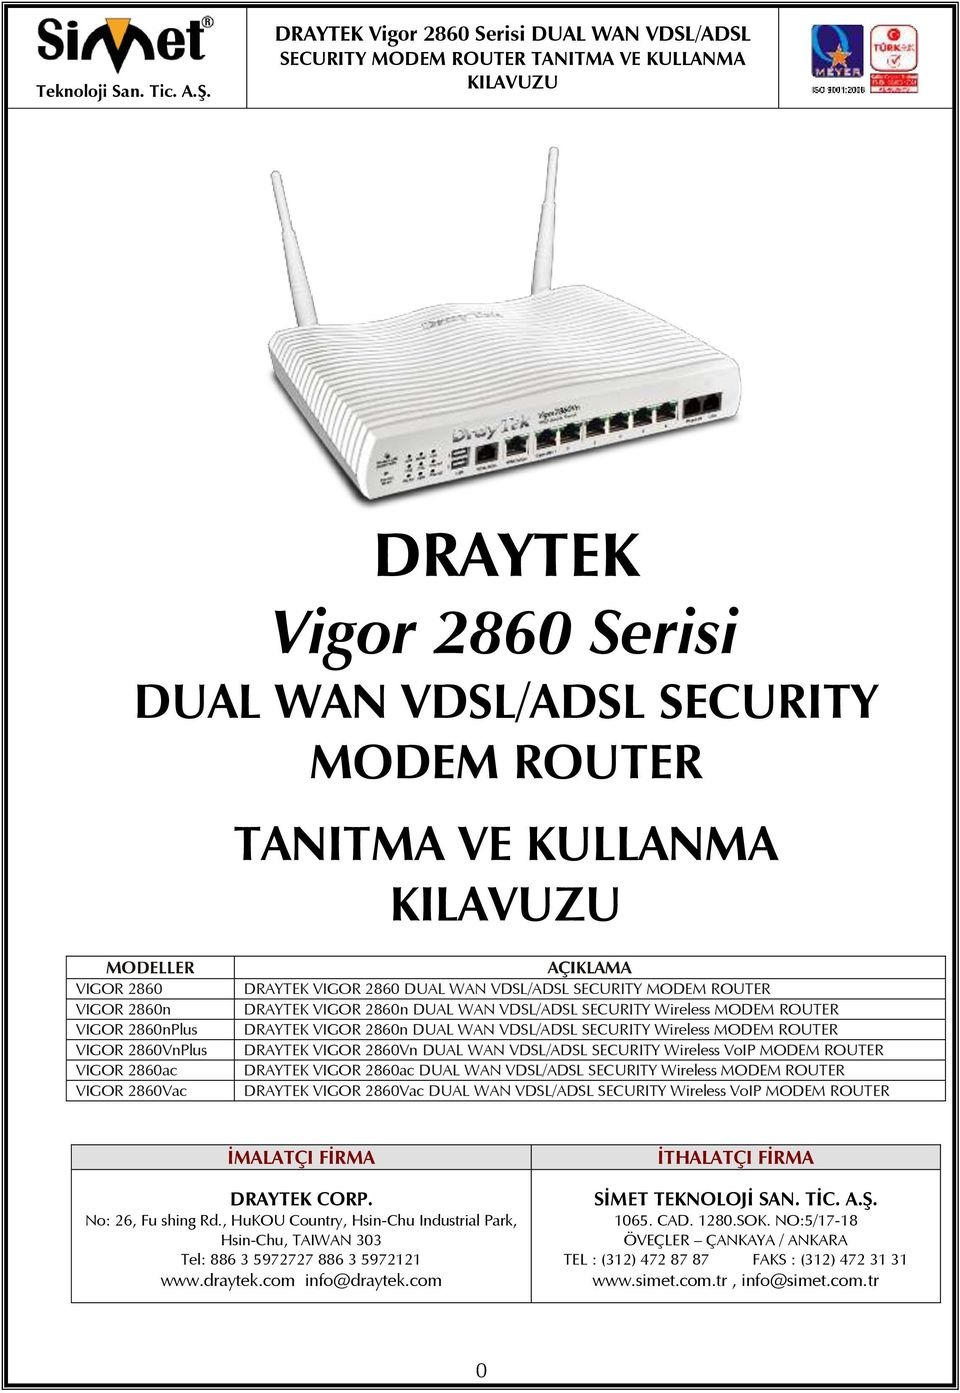 VIGOR 2860Vn DUAL WAN VDSL/ADSL SECURITY Wireless VoIP MODEM ROUTER DRAYTEK VIGOR 2860ac DUAL WAN VDSL/ADSL SECURITY Wireless MODEM ROUTER DRAYTEK VIGOR 2860Vac DUAL WAN VDSL/ADSL SECURITY Wireless